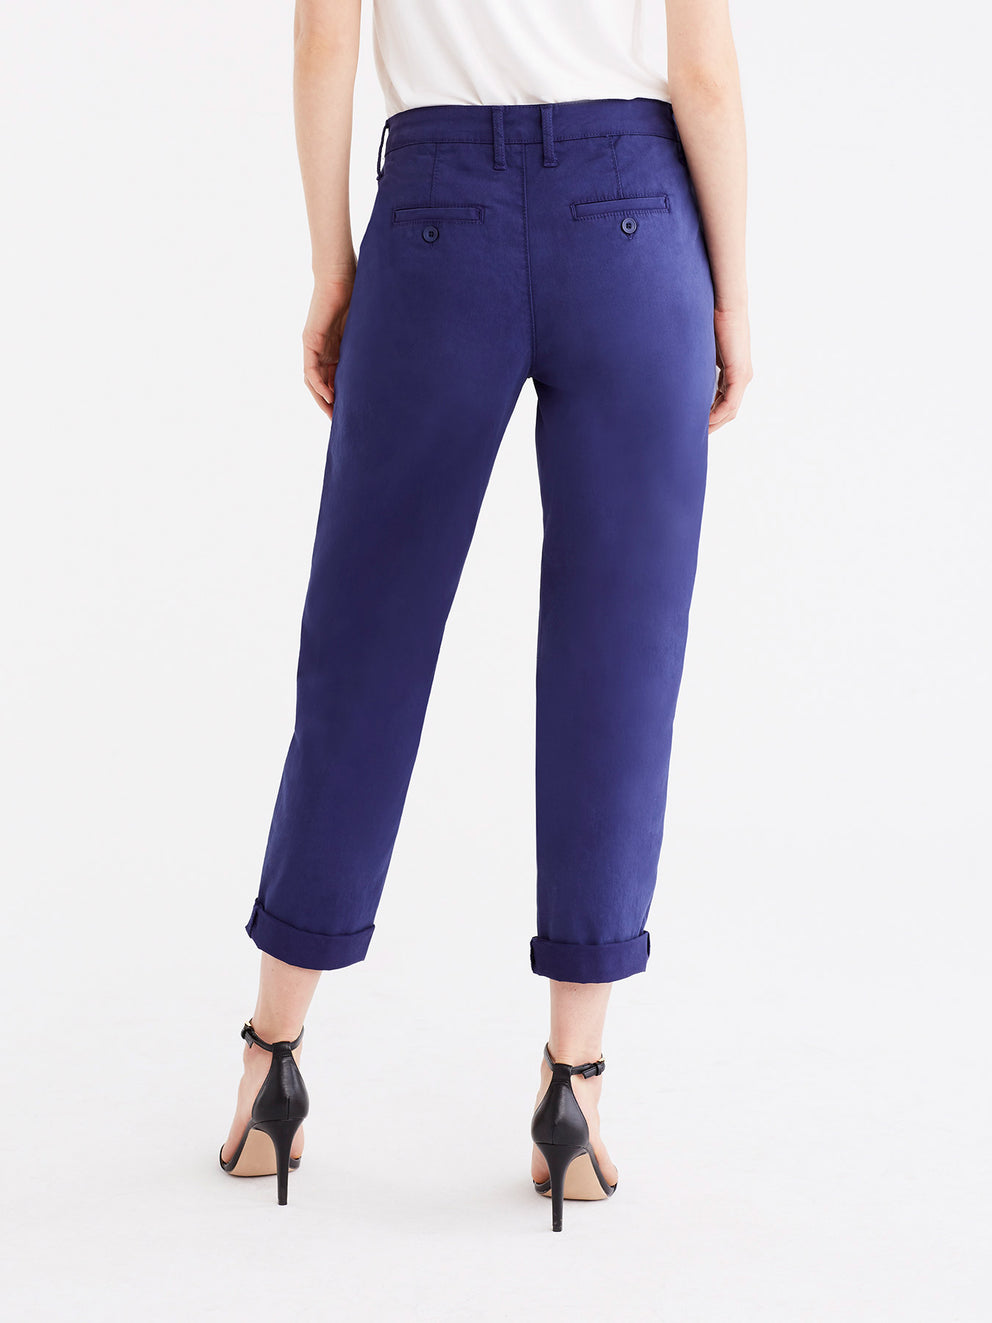 The Jones New York Classic Cropped Chino in color Navy - Image Position 5